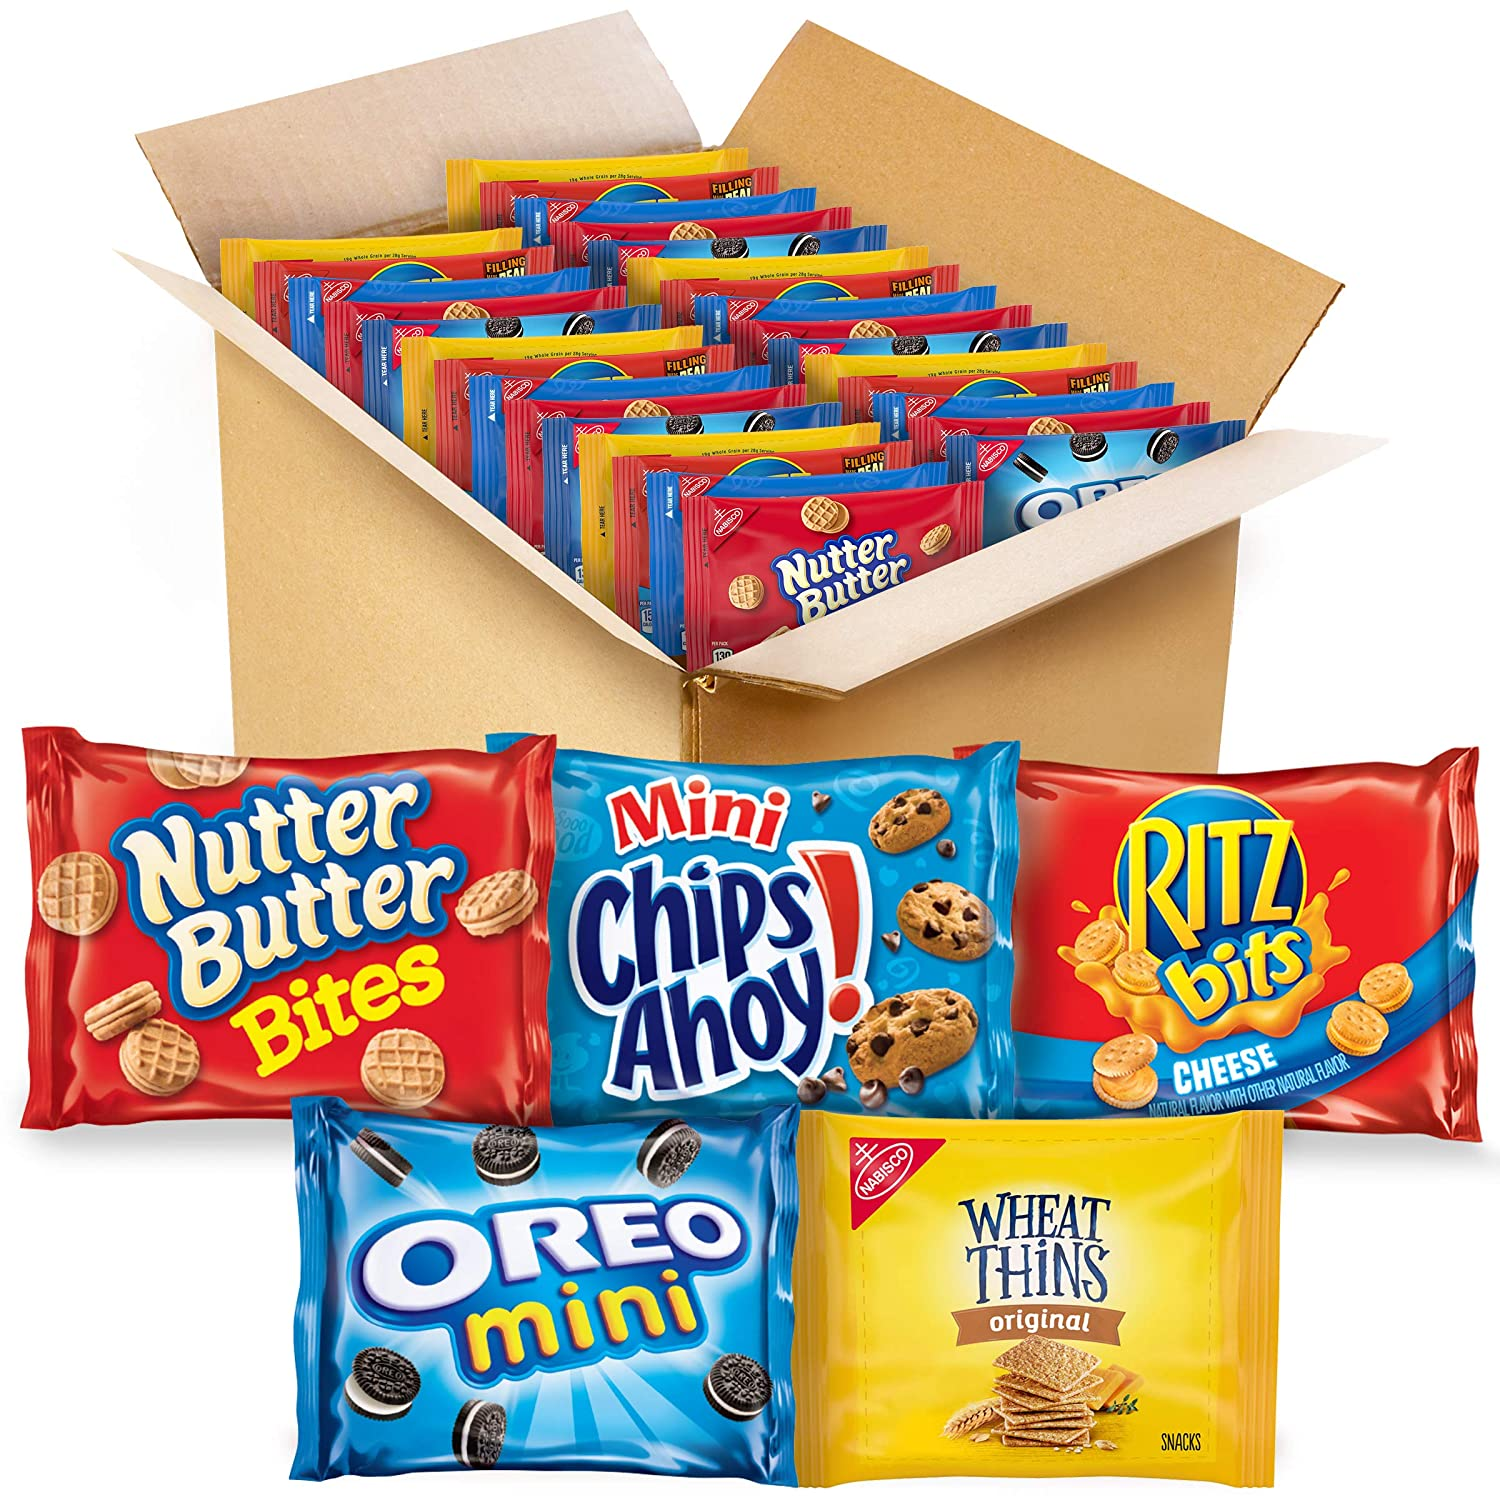 OREO Mini Cookies, Mini CHIPS AHOY! Cookies, RITZ Bits Cheese Crackers, Nutter Butter Bites & Wheat Thins Crackers, Nabisco Cookie & Cracker Variety Pack, 50 Snack Pack